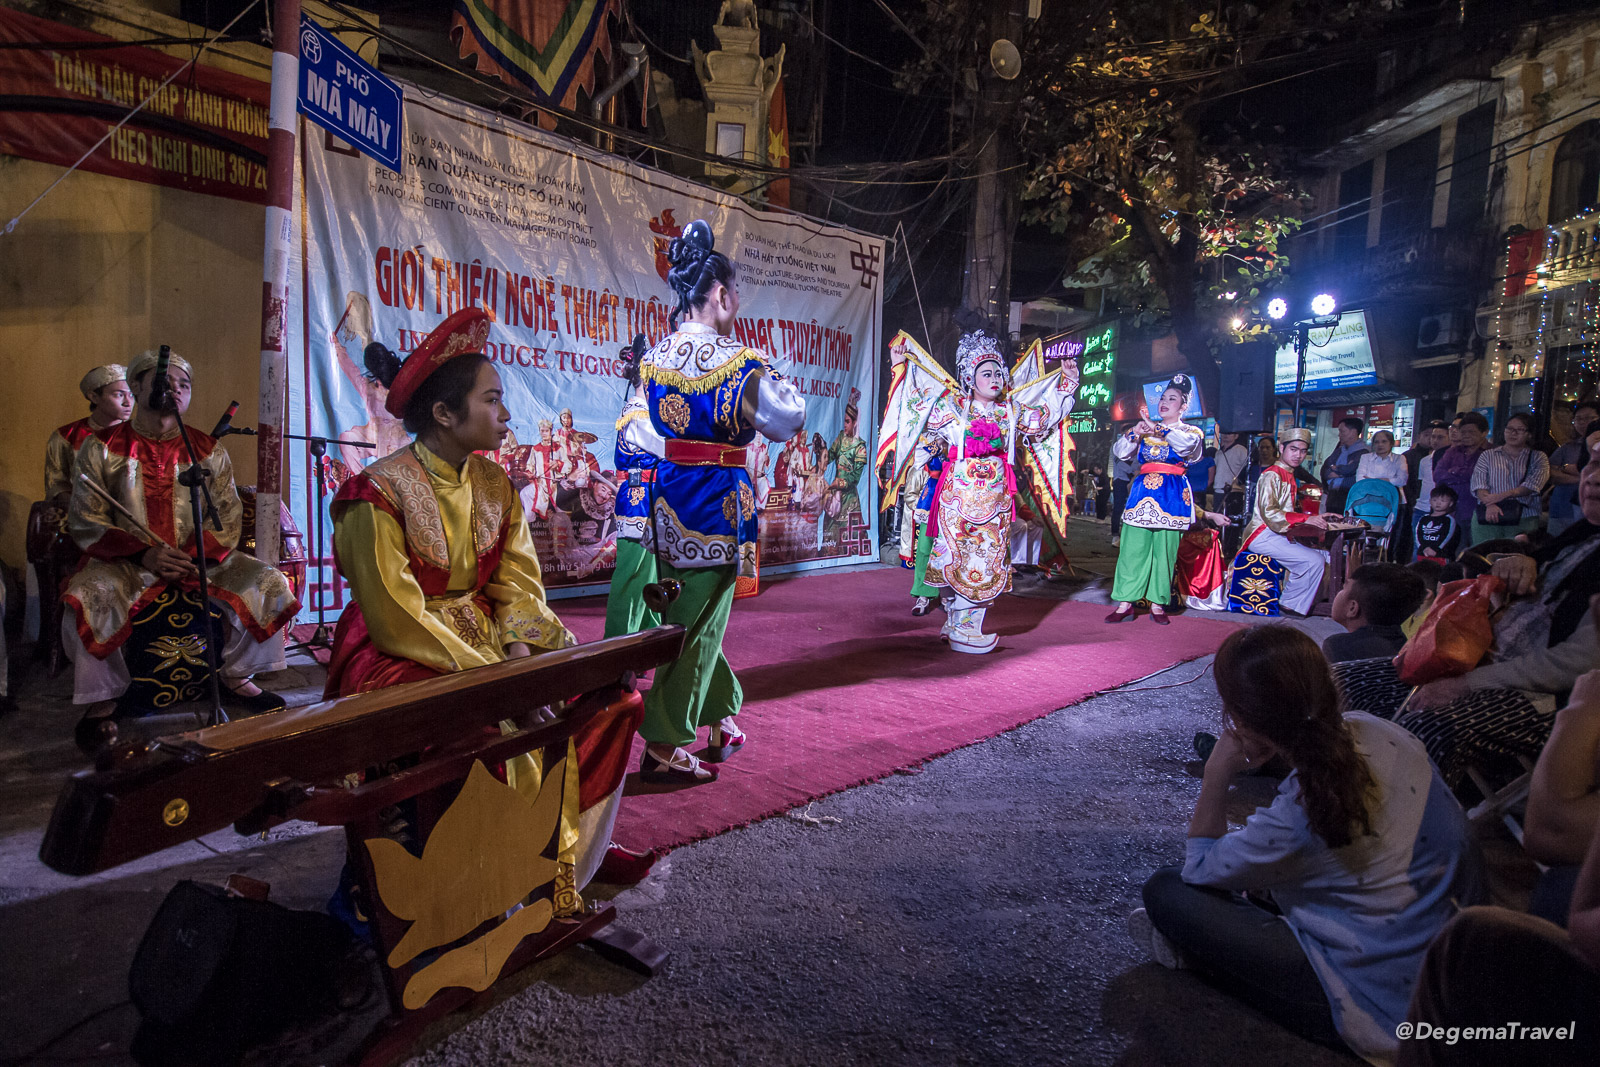 A cultural and musical performance on the streets of the Old Quarter in Hanoi, Vietnam